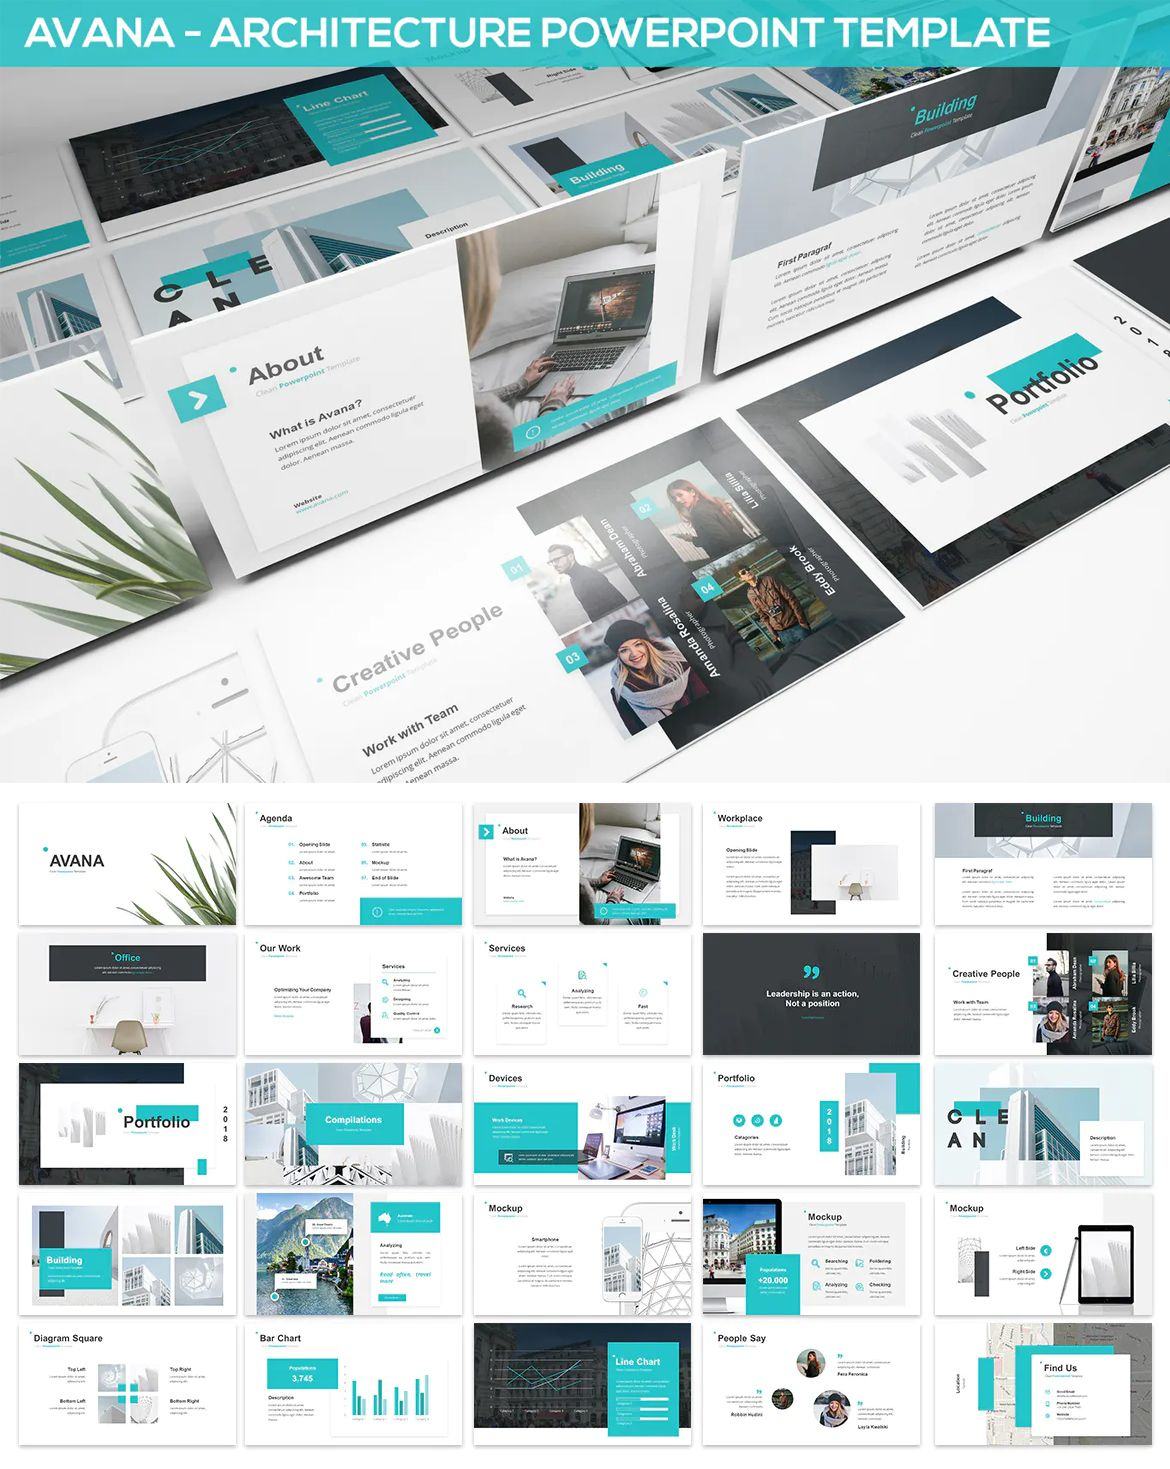 Avana Architecture Powerpoint Template By Slidefactory On Powerpoint Presentation Templates Presentation Templates Presentation Design Template